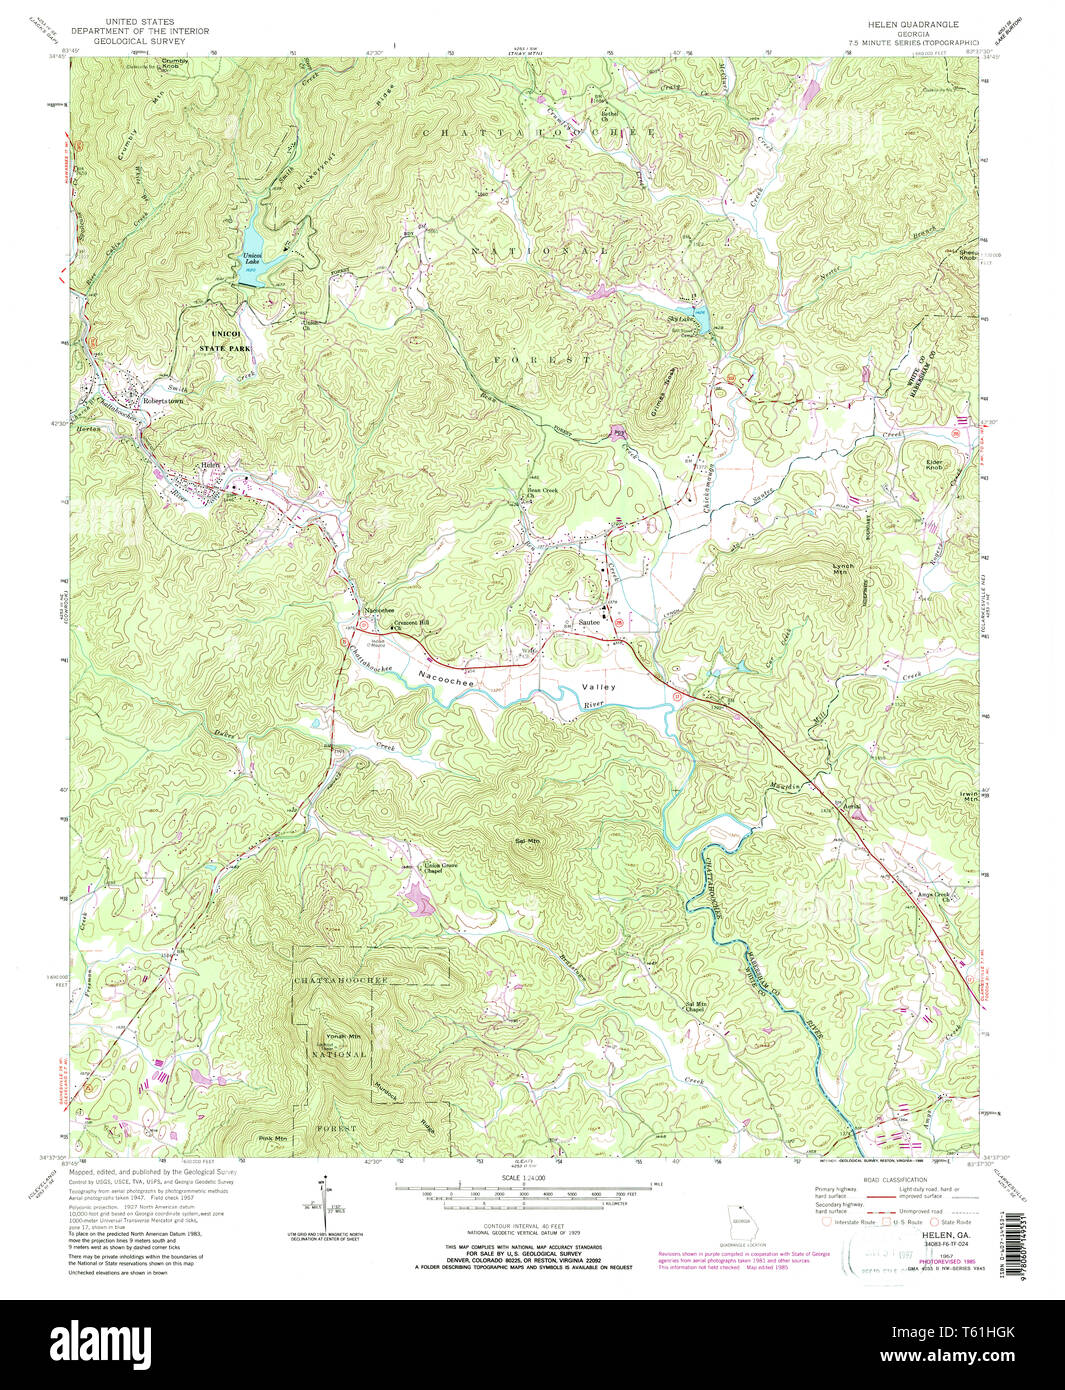 Map Of Georgia Helen.Usgs Topo Map Georgia Ga Helen 245891 1957 24000 Restoration Stock